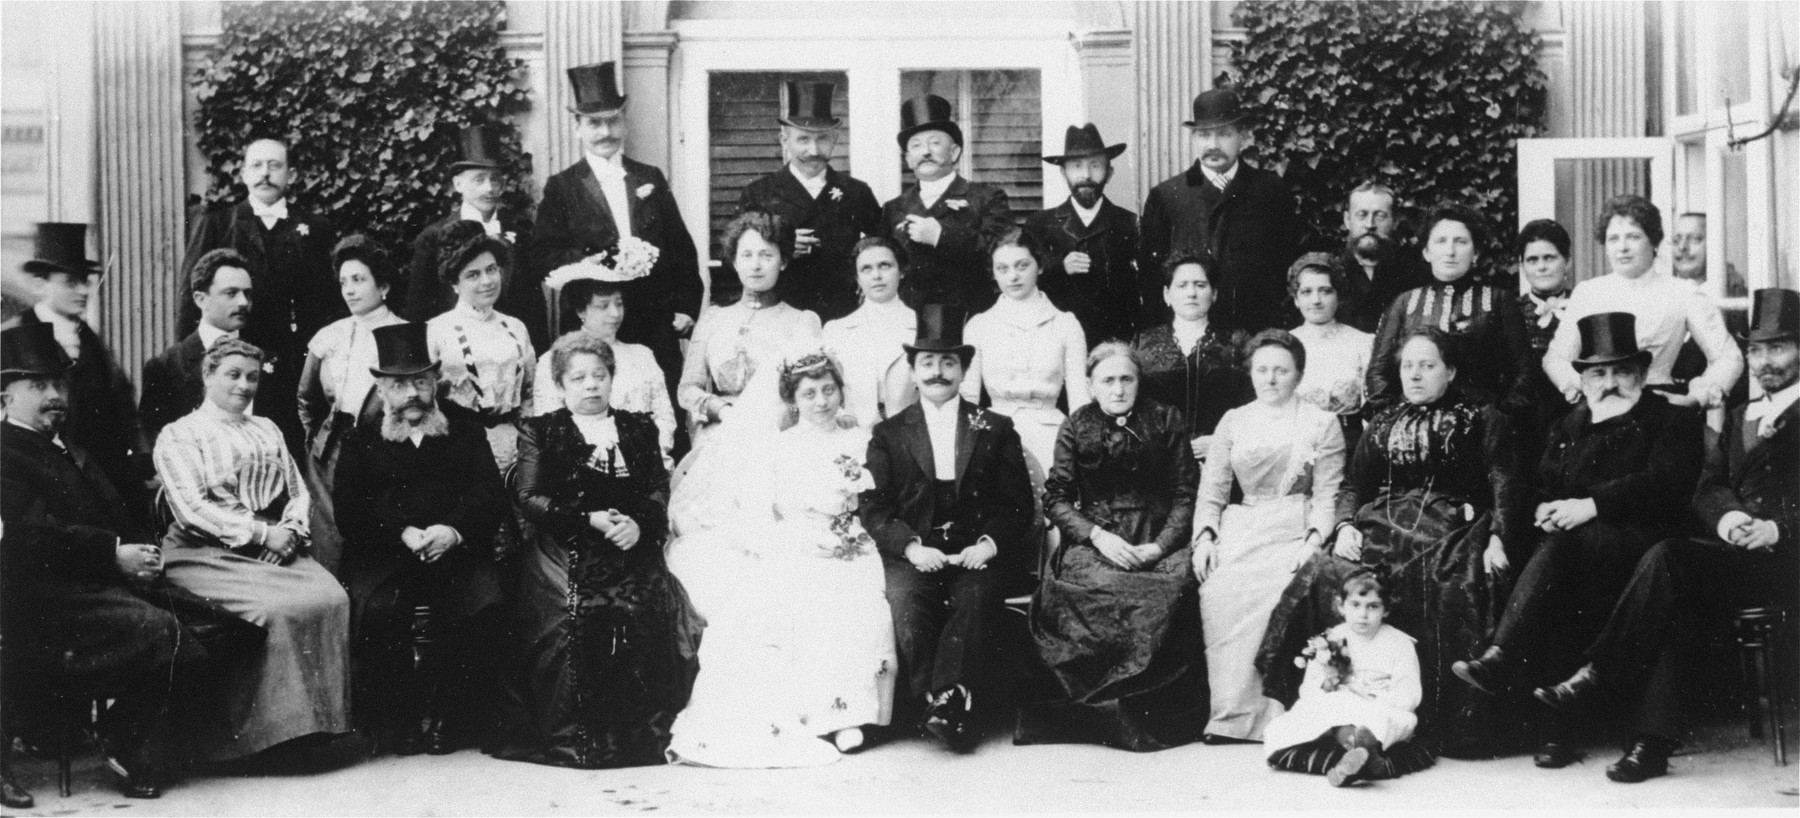 Family photograph taken at the wedding of Lili Kafka and Dr. Eduard Bloch.    Among those pictured is Egon Kafka, the donor's father, (standing in the back row, first from the left).